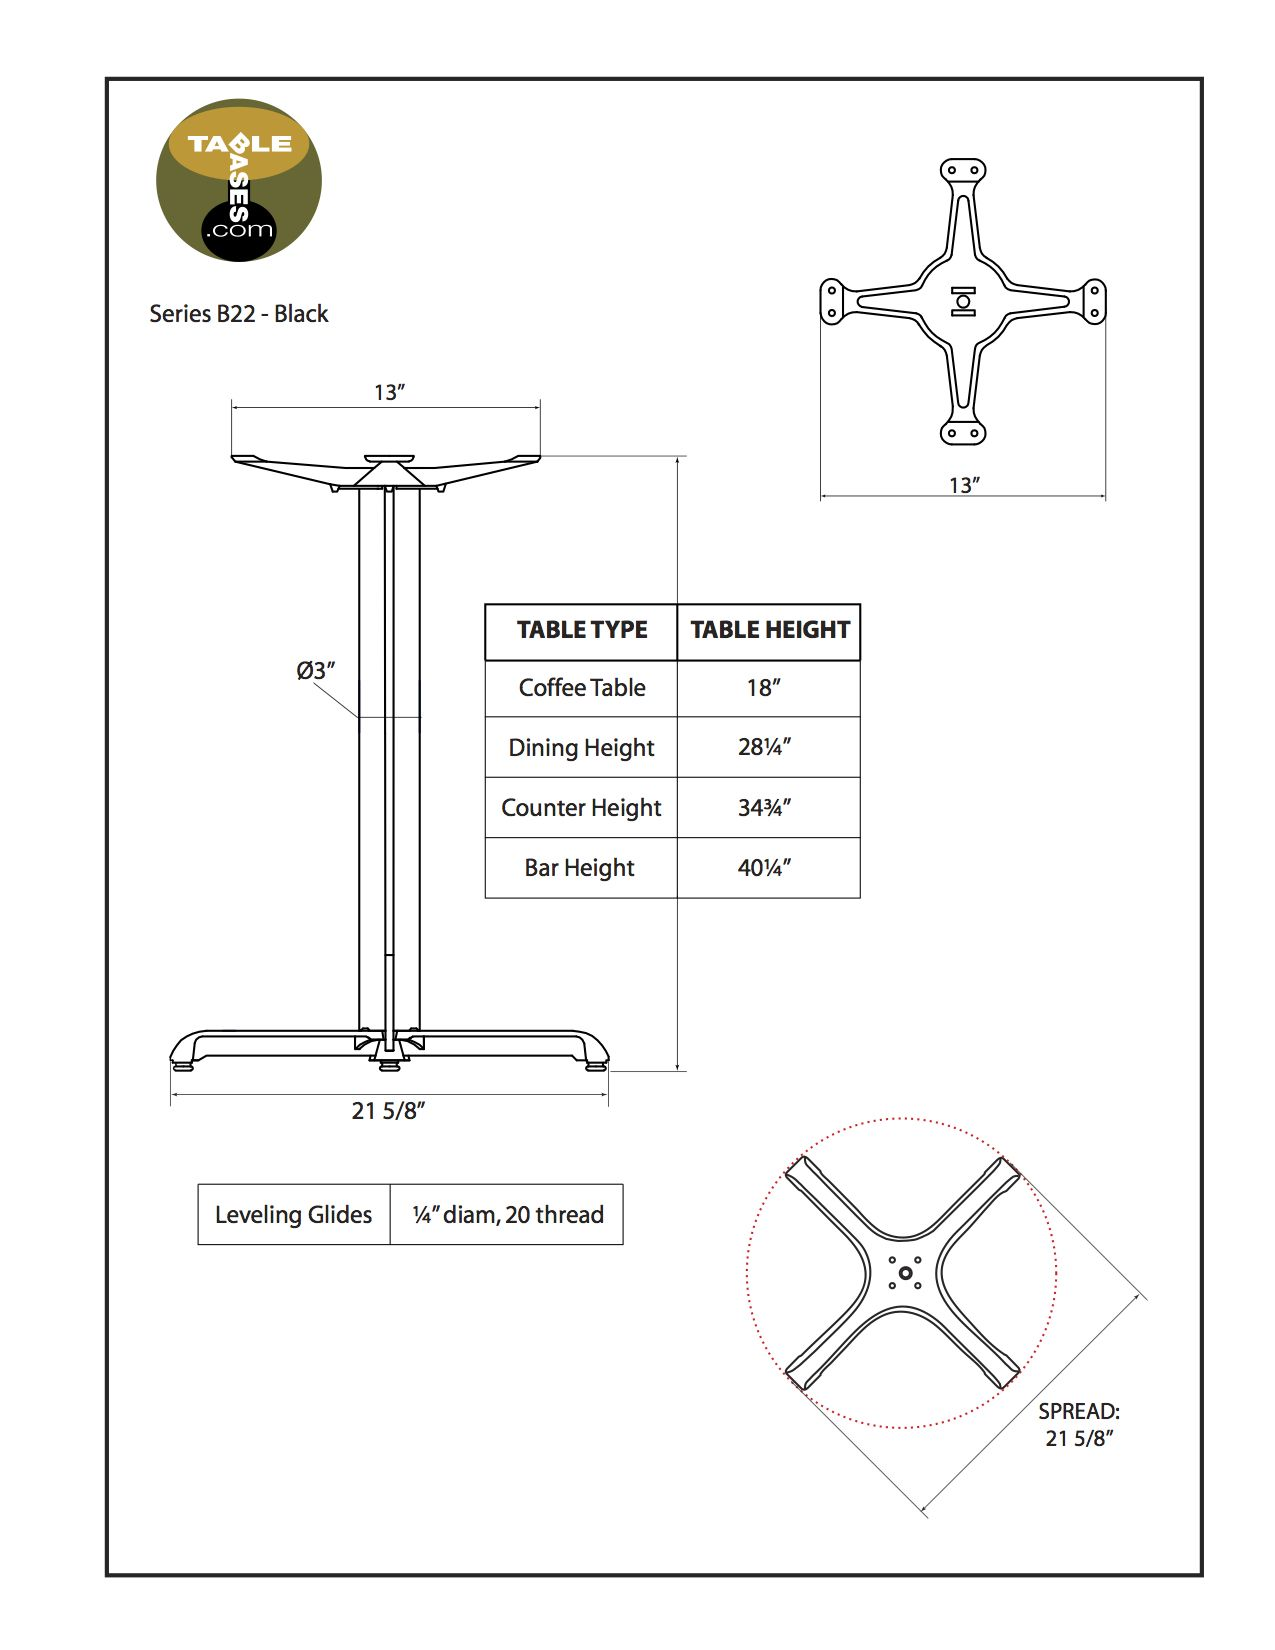 B22 Black Table Base - Specifications